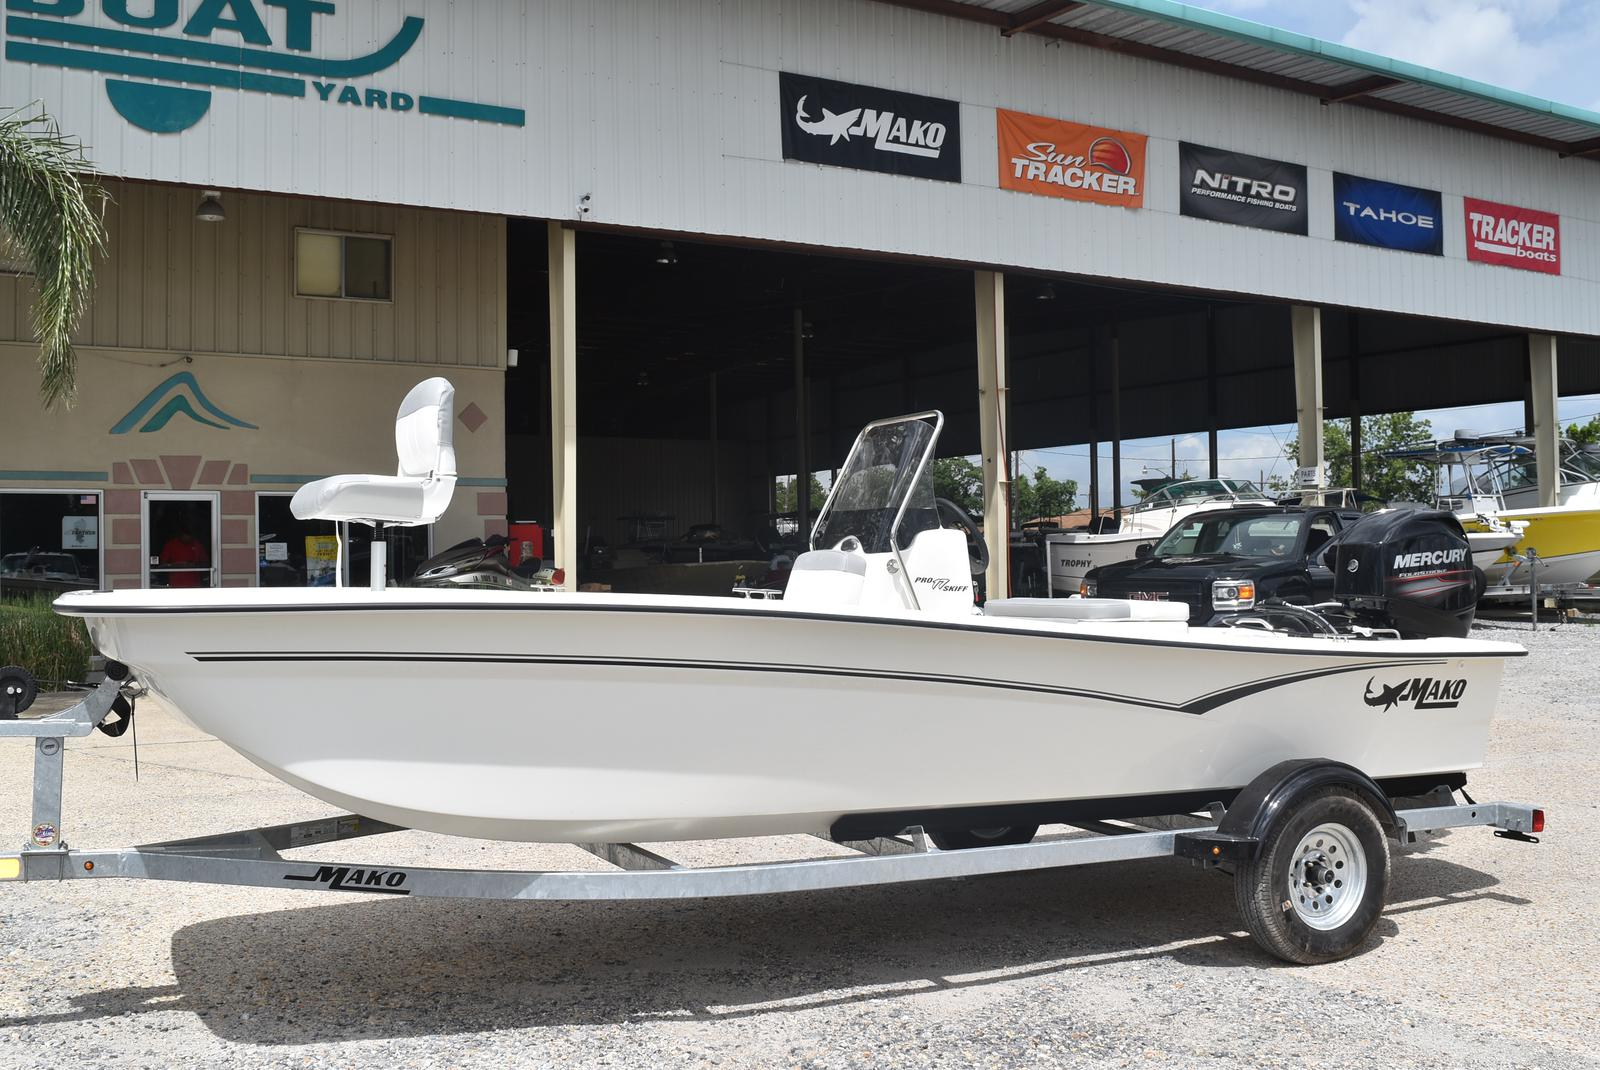 2020 Mako boat for sale, model of the boat is Pro Skiff 17, 75 ELPT & Image # 116 of 702